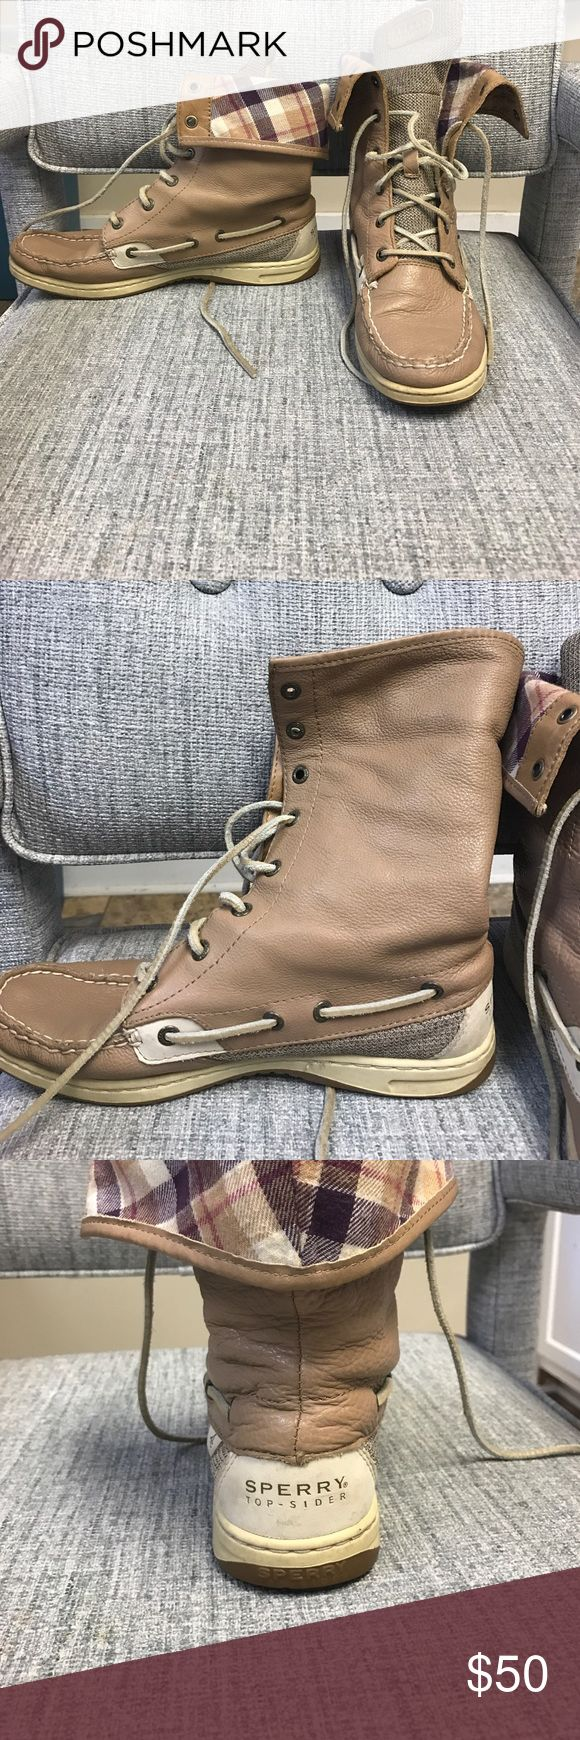 Sperry boat boots Role down sperry boots. I've had for a long time but sadly I never wear them! In very good condition Sperry Top-Sider Shoes Lace Up Boots